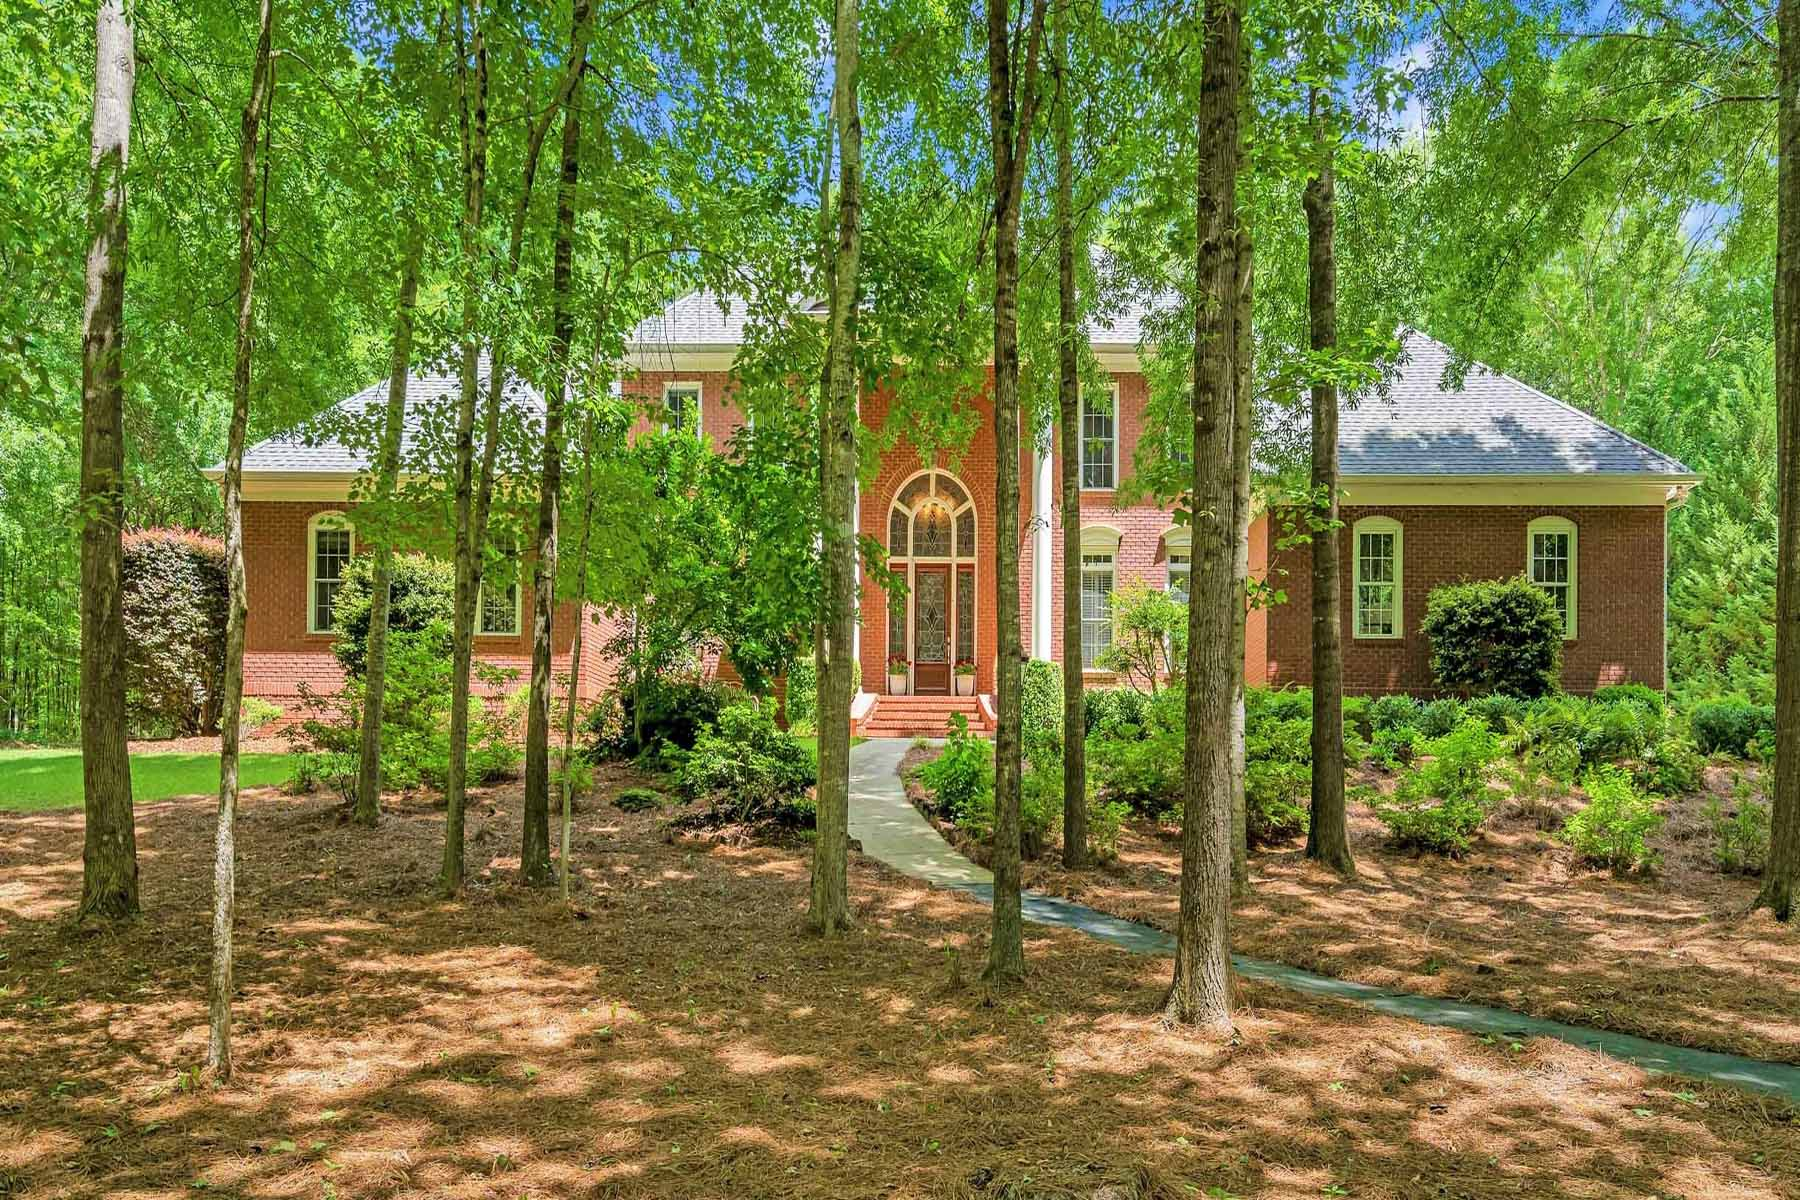 Single Family Homes for Active at Exquisite Custom-Built Home in Historic Madison 1065 Saye Creek Drive Madison, Georgia 30650 United States